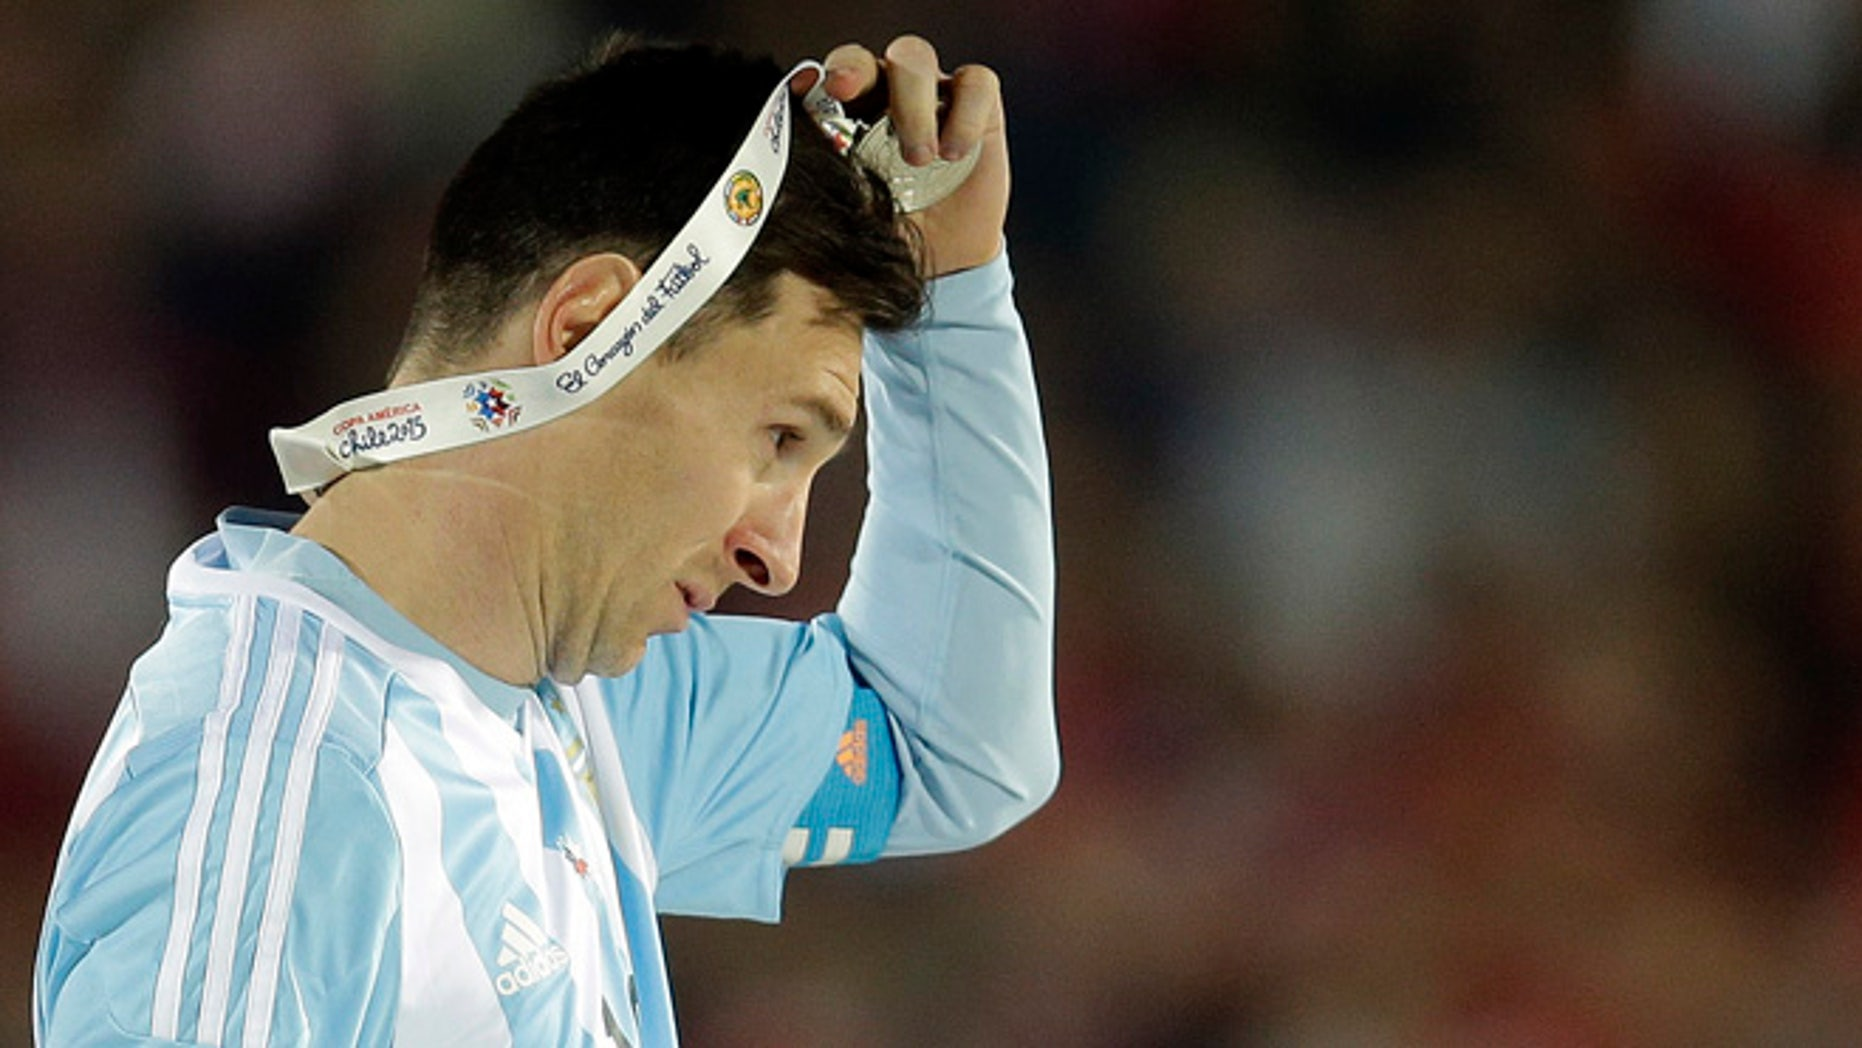 FILE - In this July 4, 2015 file photo, Argentina's Lionel Messi takes off the Copa America silver medal after the final game with Chile at the National Stadium in Santiago, Chile. Messi's shocking decision to stop playing for Argentina could further hurt his already tarnished legacy with his national team. If Messi sticks to his announcement, made in the heat-of-the-moment shortly after Argentina's penalty shootout loss to Chile in Sunday's Copa America final on June 26, 2016, Argentina will be left dwelling on the fact that it was not able to win any significant title while having one of the best players of all time. (AP Photo/Natacha Pisarenko, File)